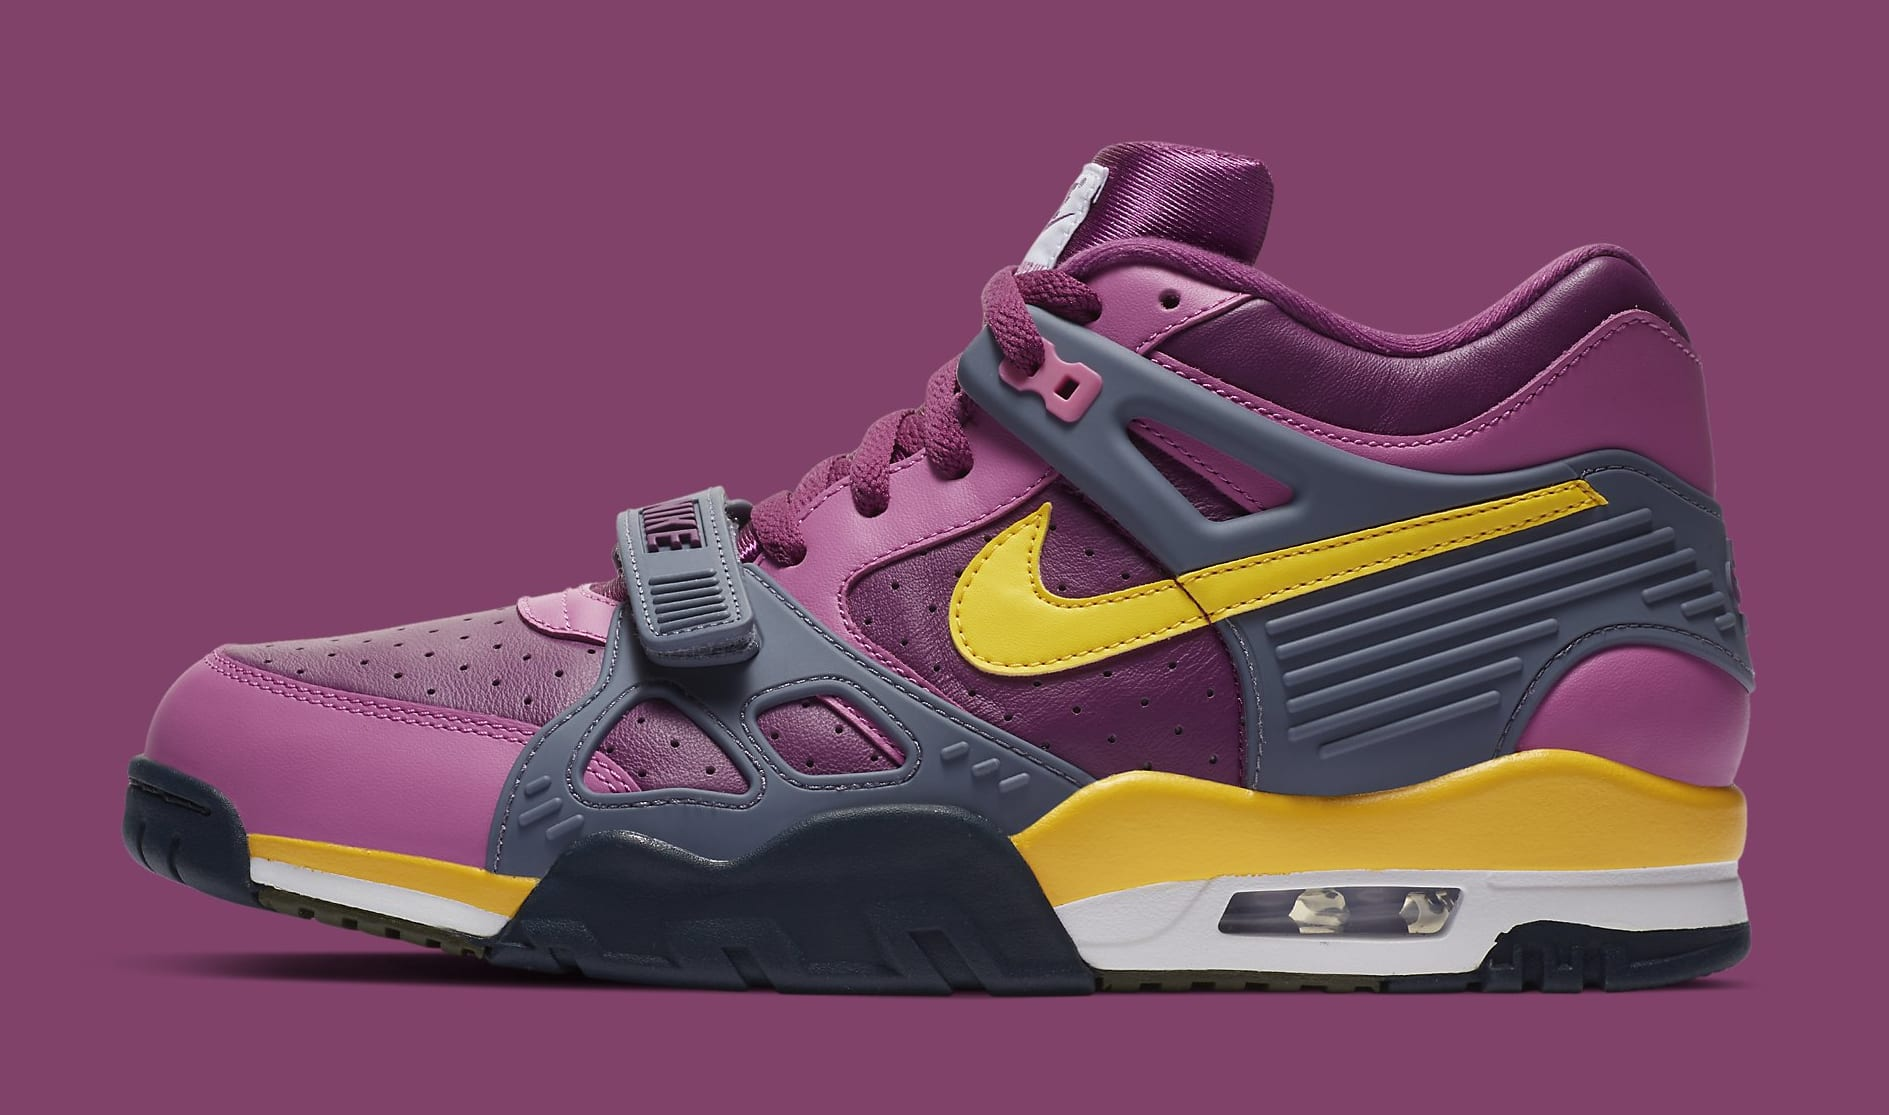 Nike Air Trainer 3 'Viotech' 2020 CZ6393-500 Lateral